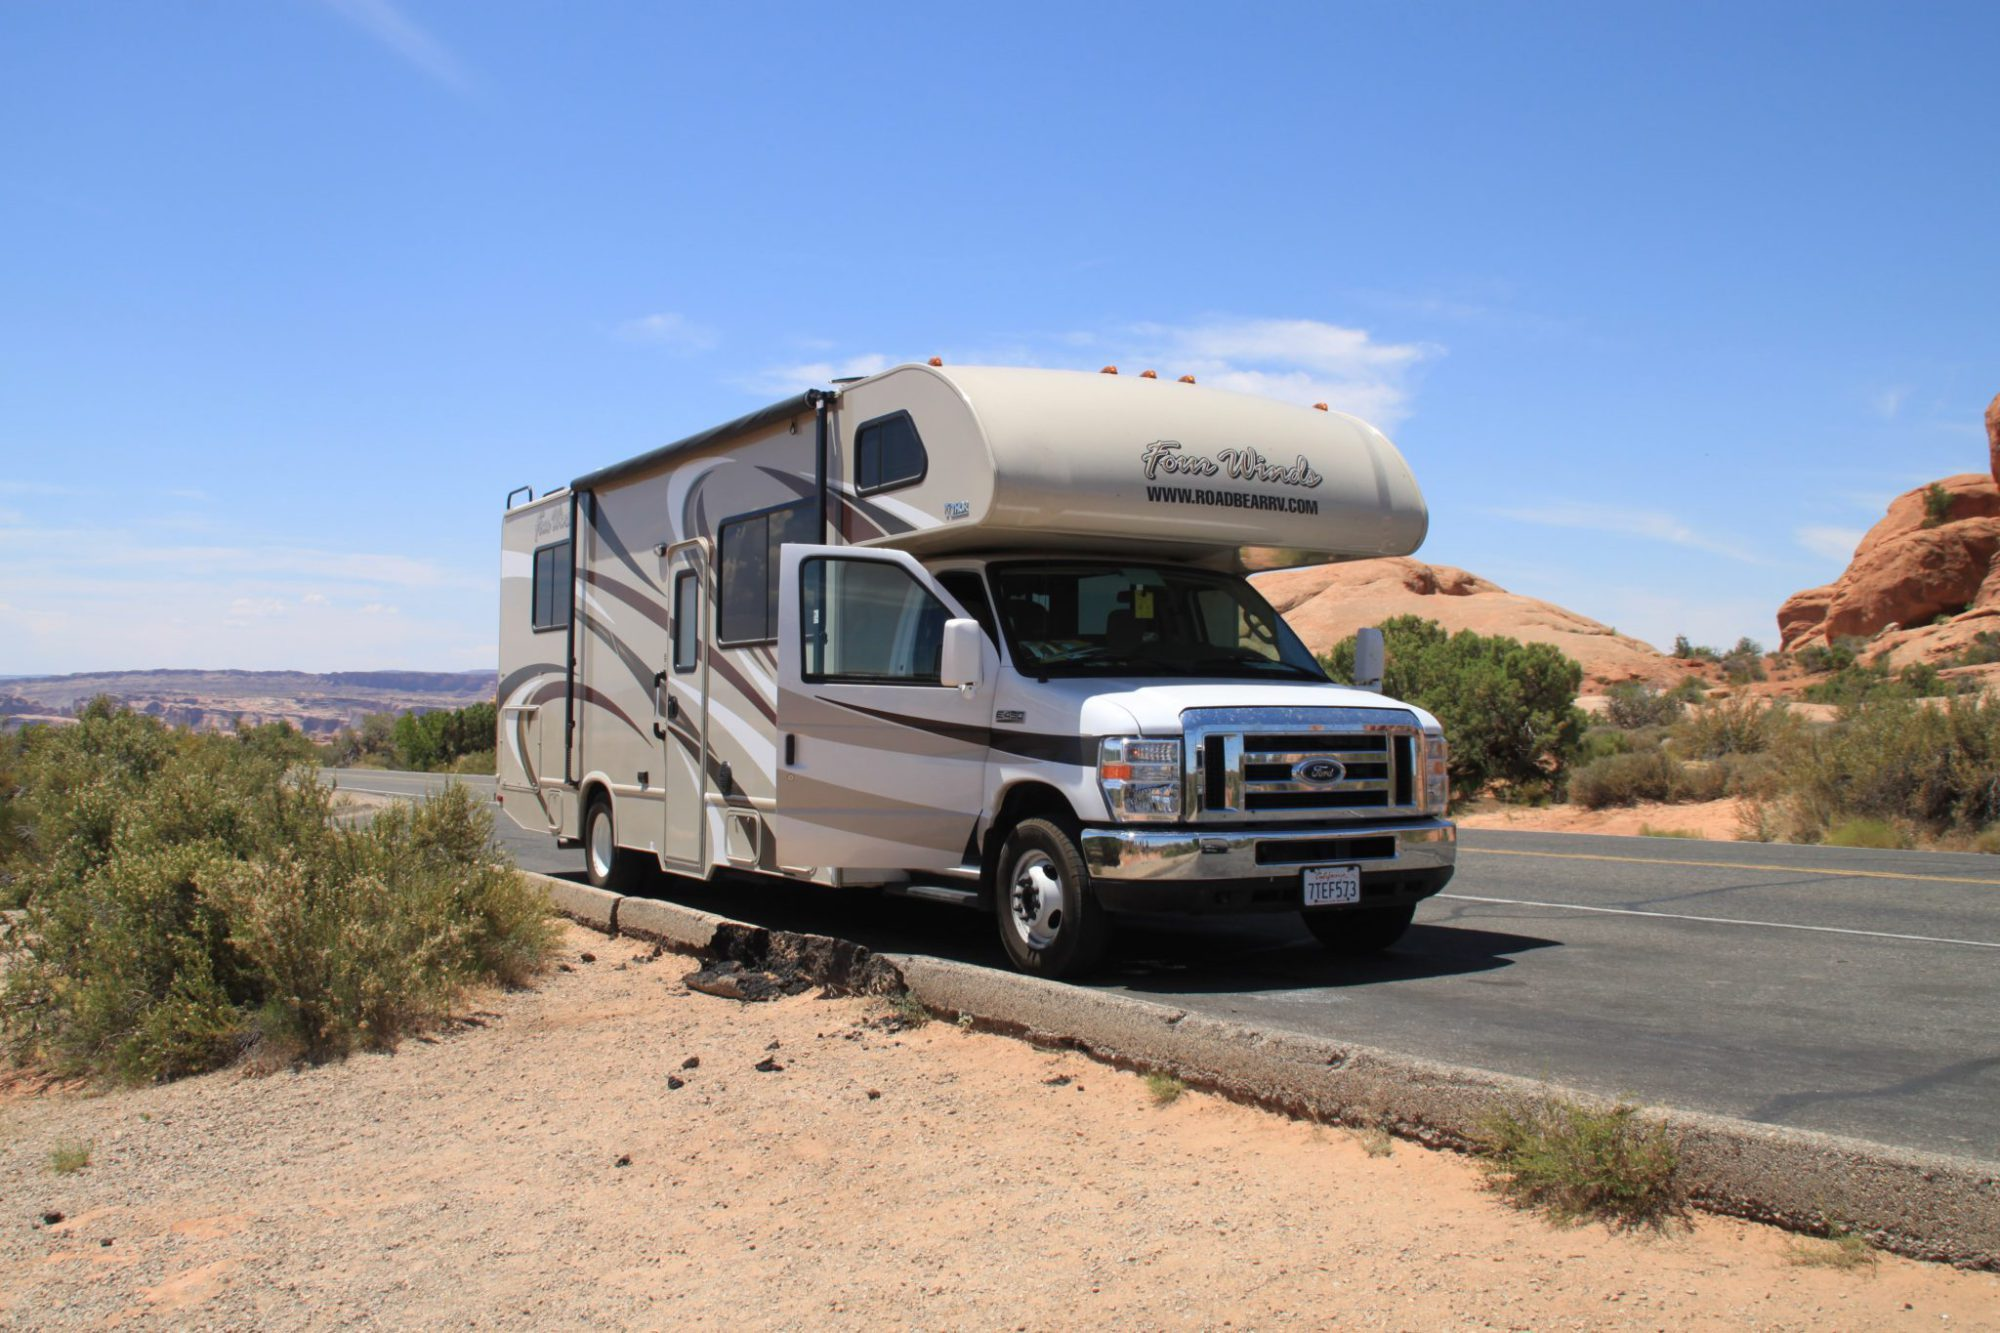 Kids Love Travel: holiday with the camper